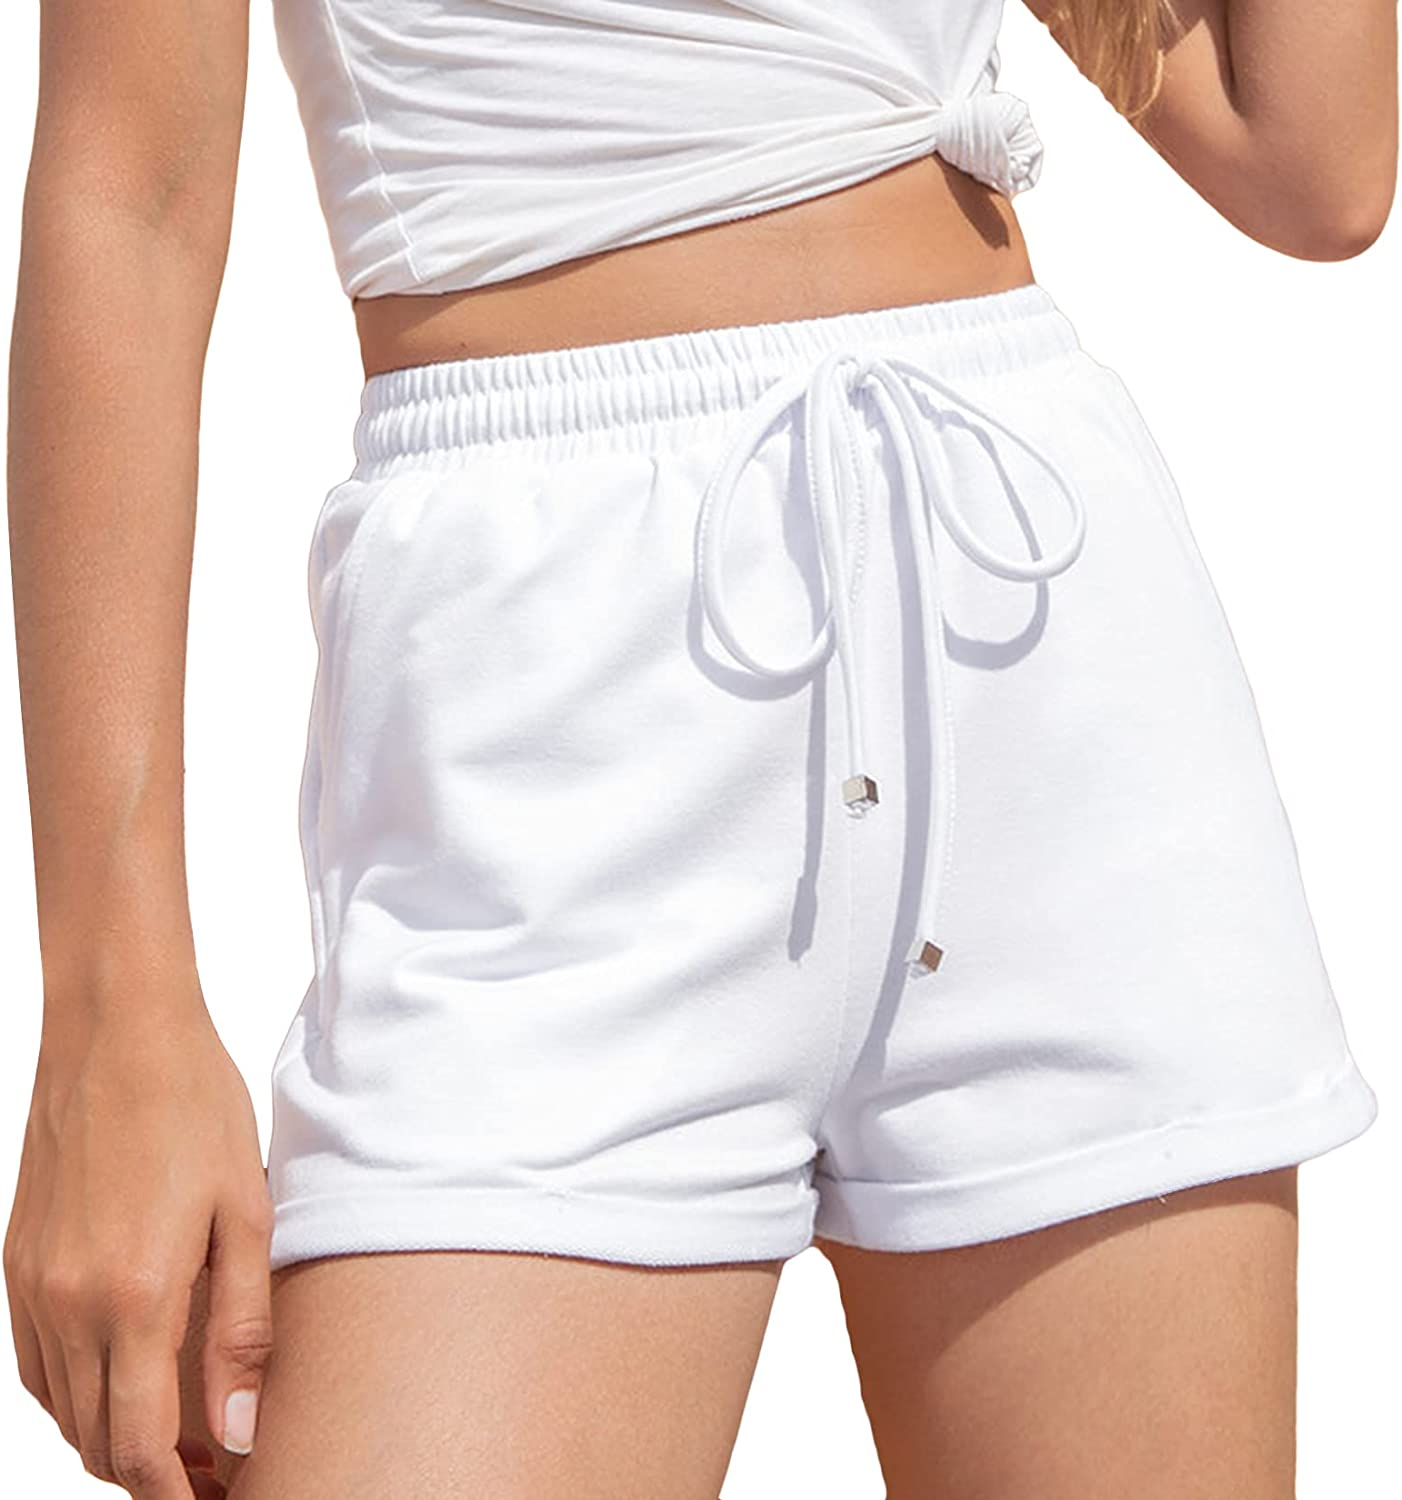 Lu's Chic Women's High Waisted Shorts Athletic Workout Drawstring Lounge Casual Sweat Shorts